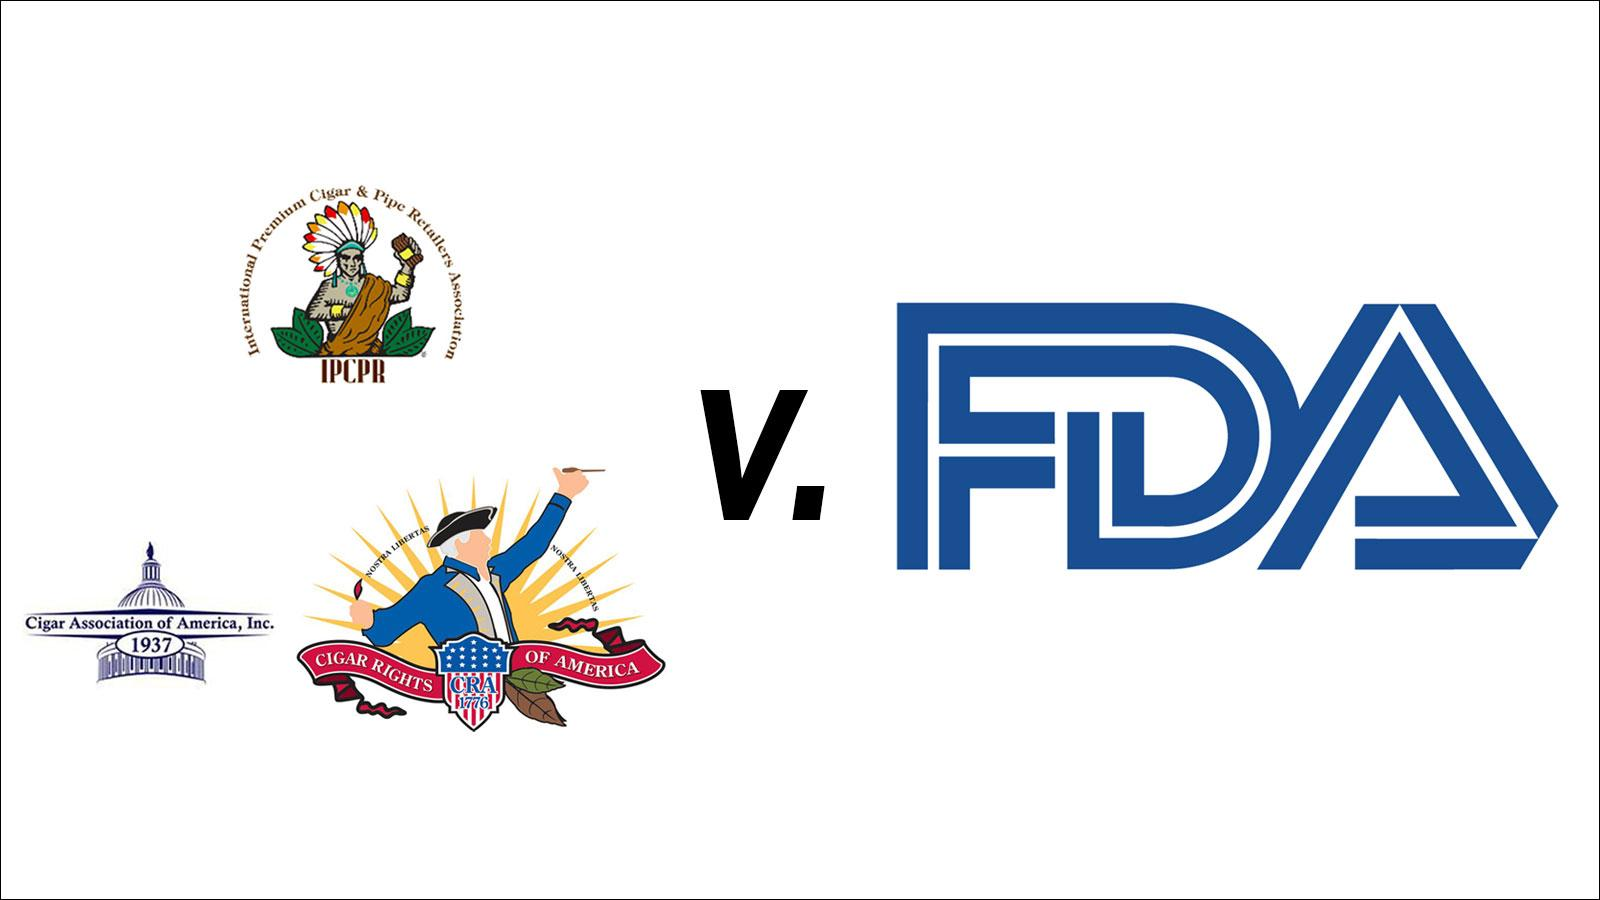 Court Date For FDA Lawsuit Pushed Back